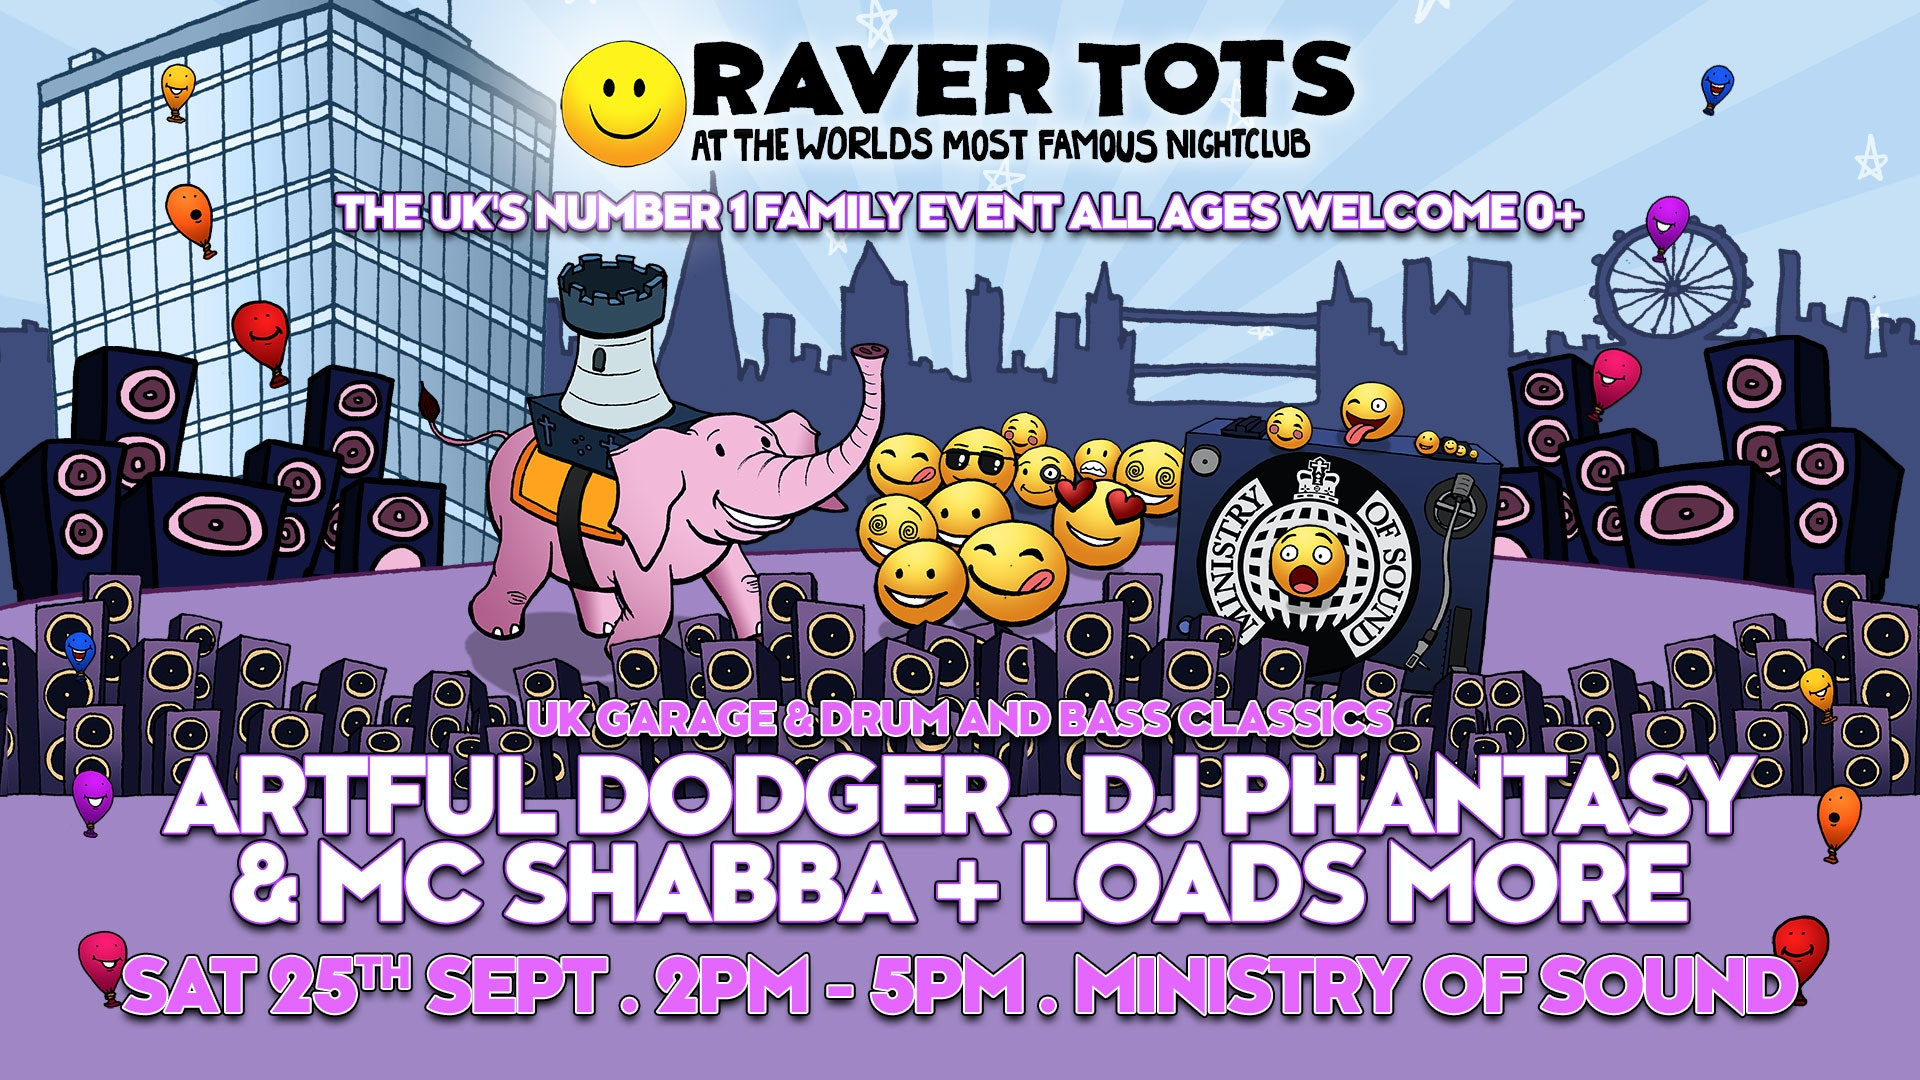 Raver Tots at Ministry of Sound with Artful Dodger, DJ Phantasy & More